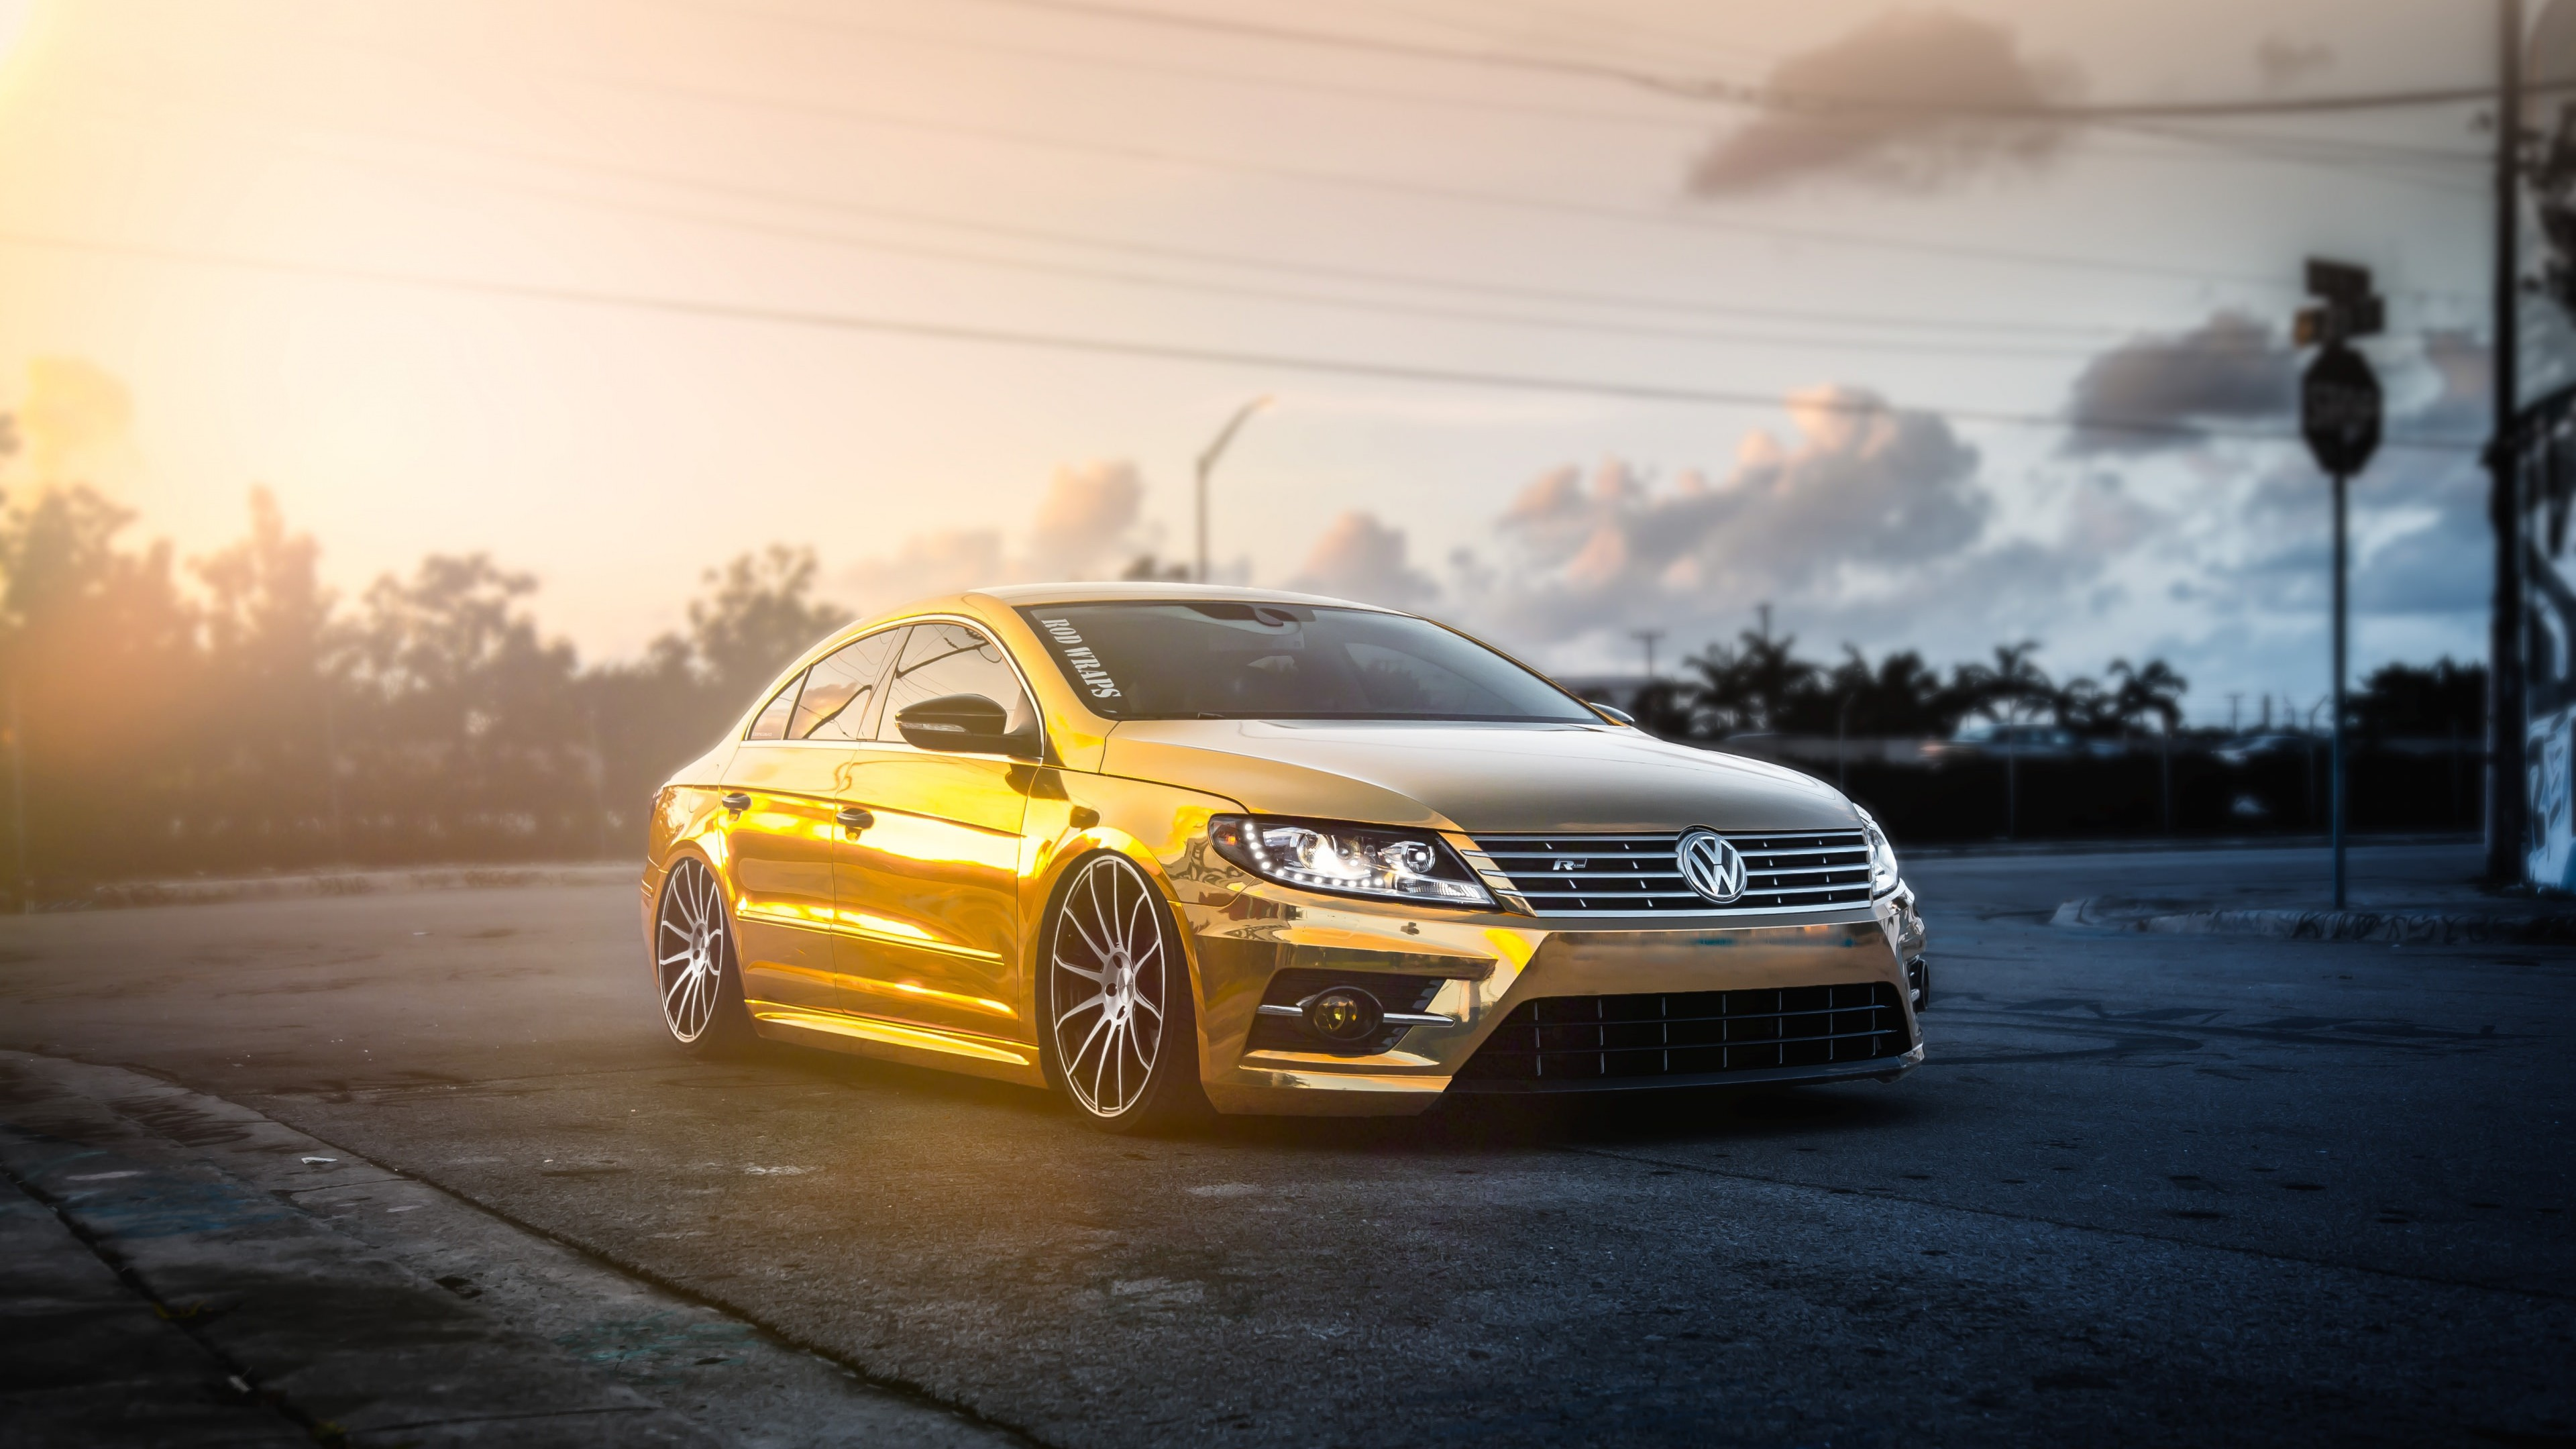 Golden Volkswagen Passat CC wallpaper